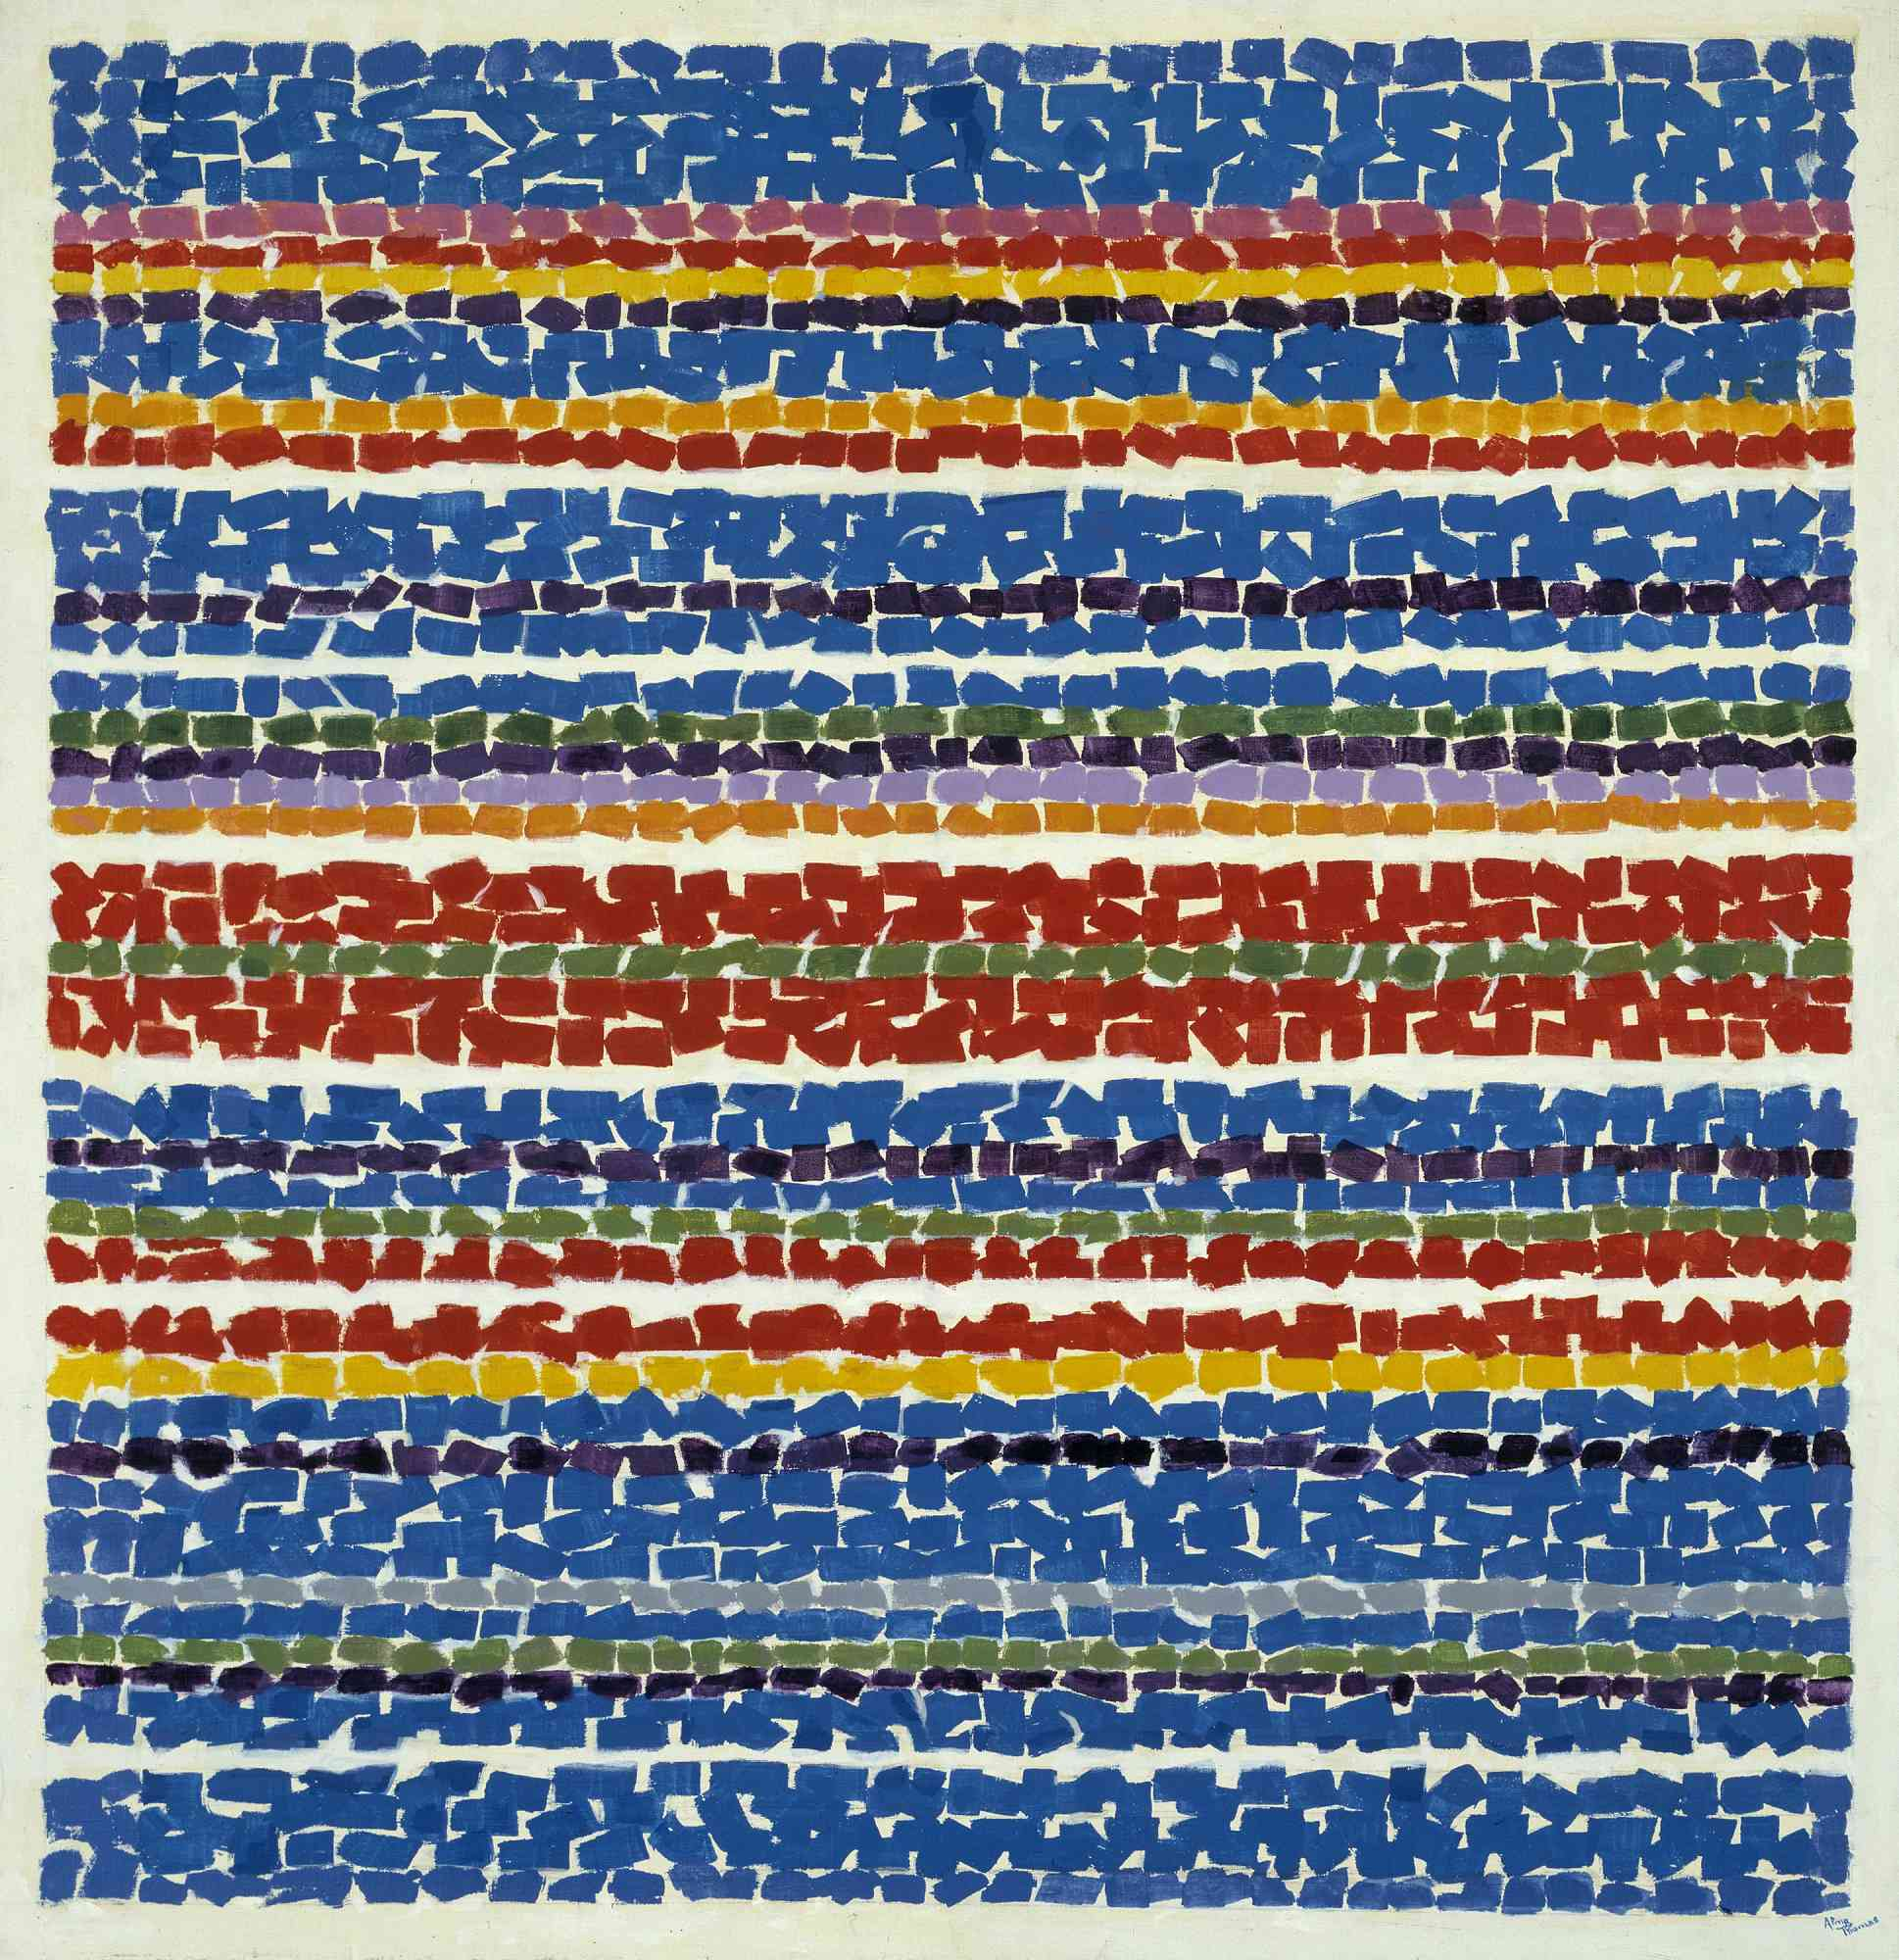 Striped canvas in layers of blue, pink, red, orange, and yellow